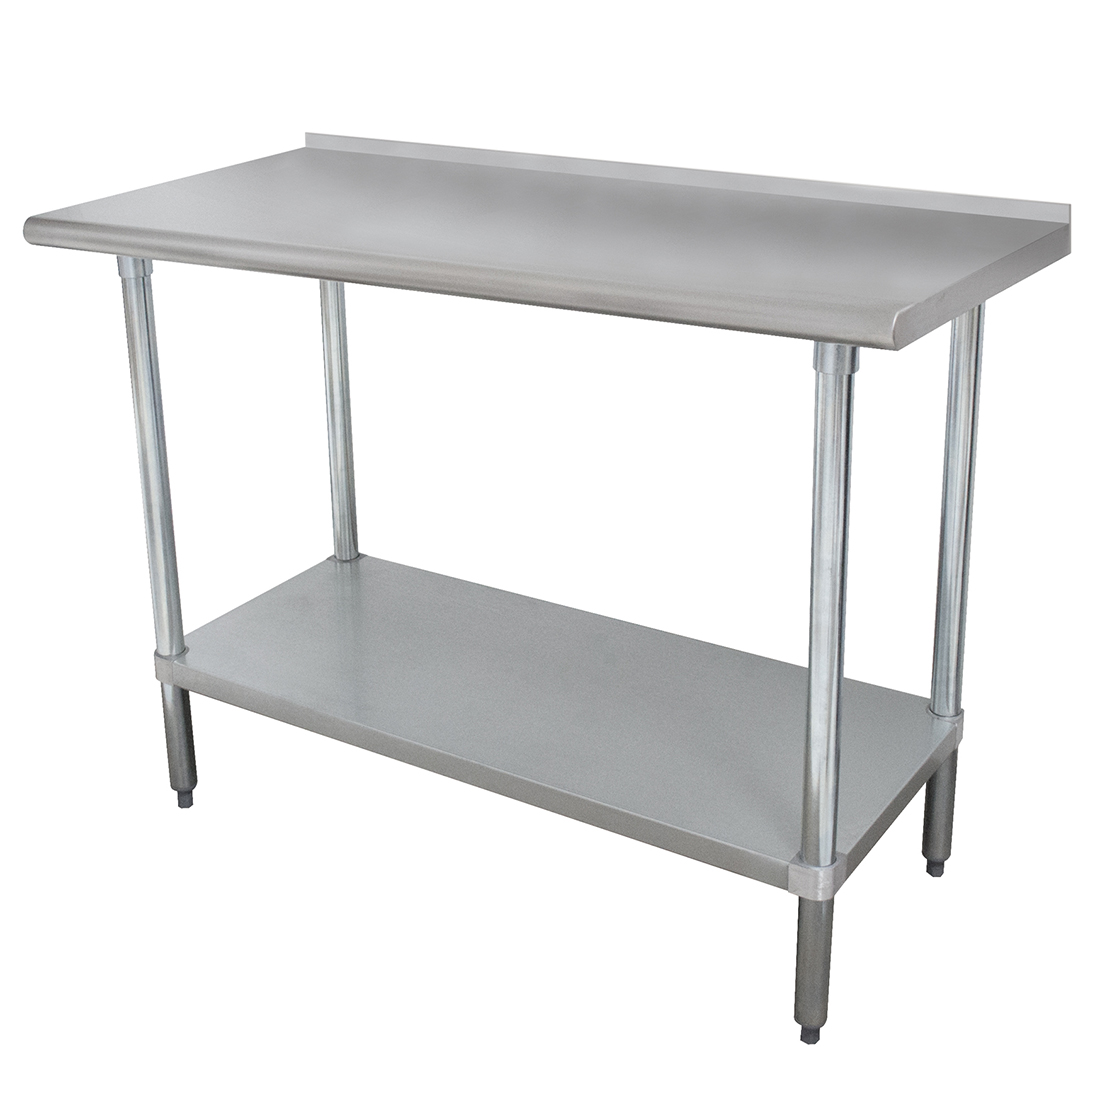 Advance Tabco FMG-3011 work table, 121